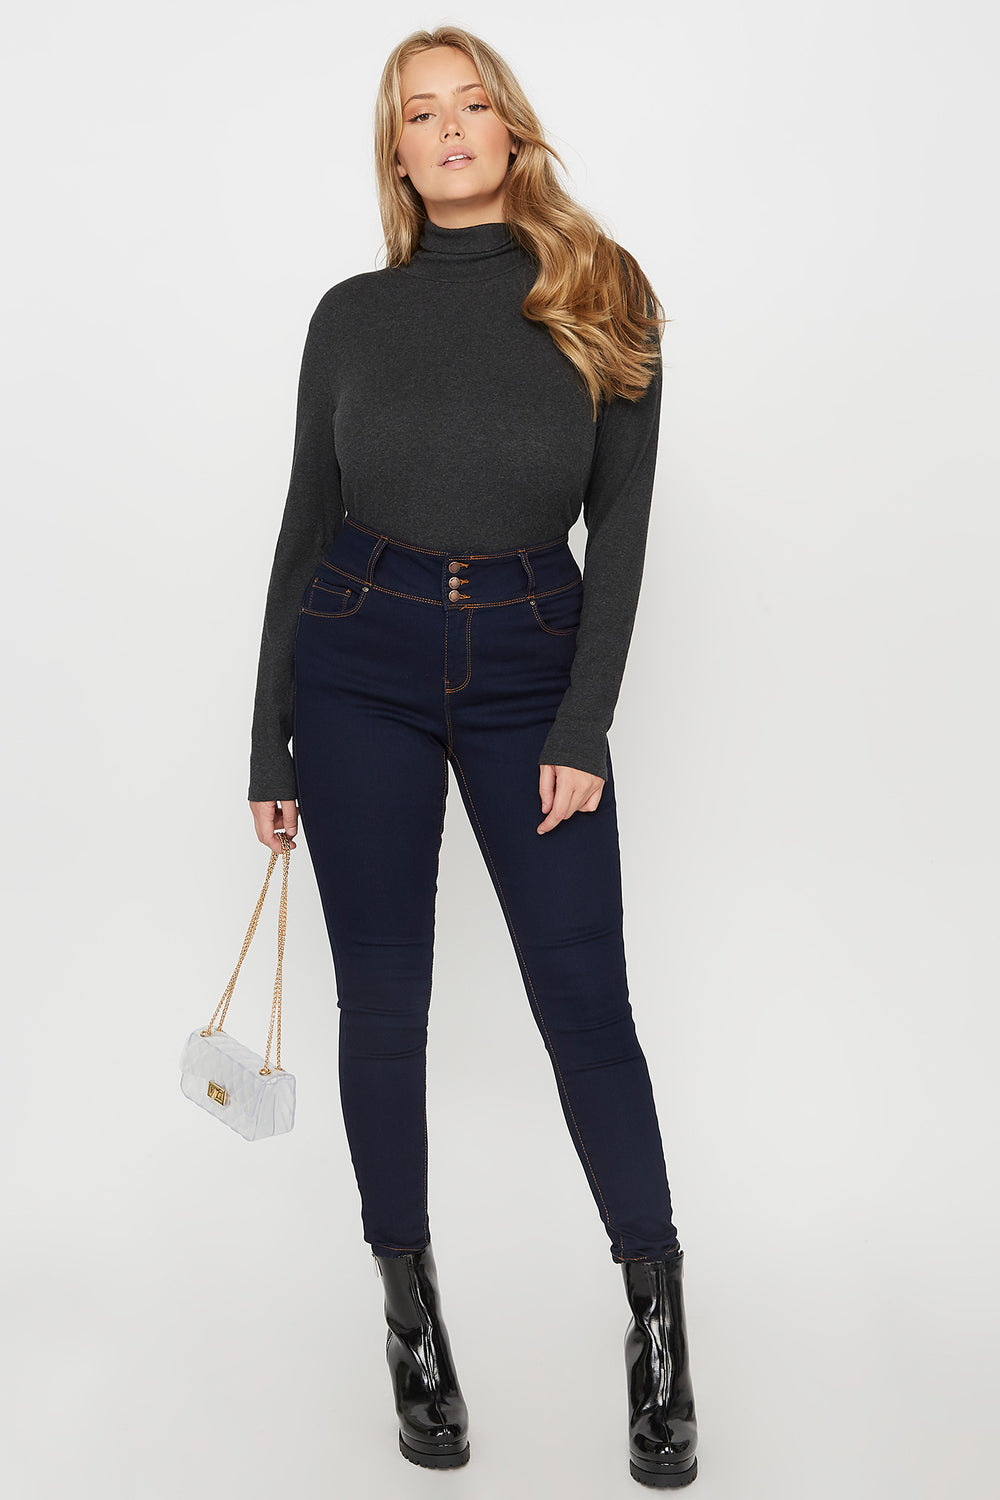 Plus Size Butt, I Love You High-Rise Push-Up Skinny Jean Navy Blue